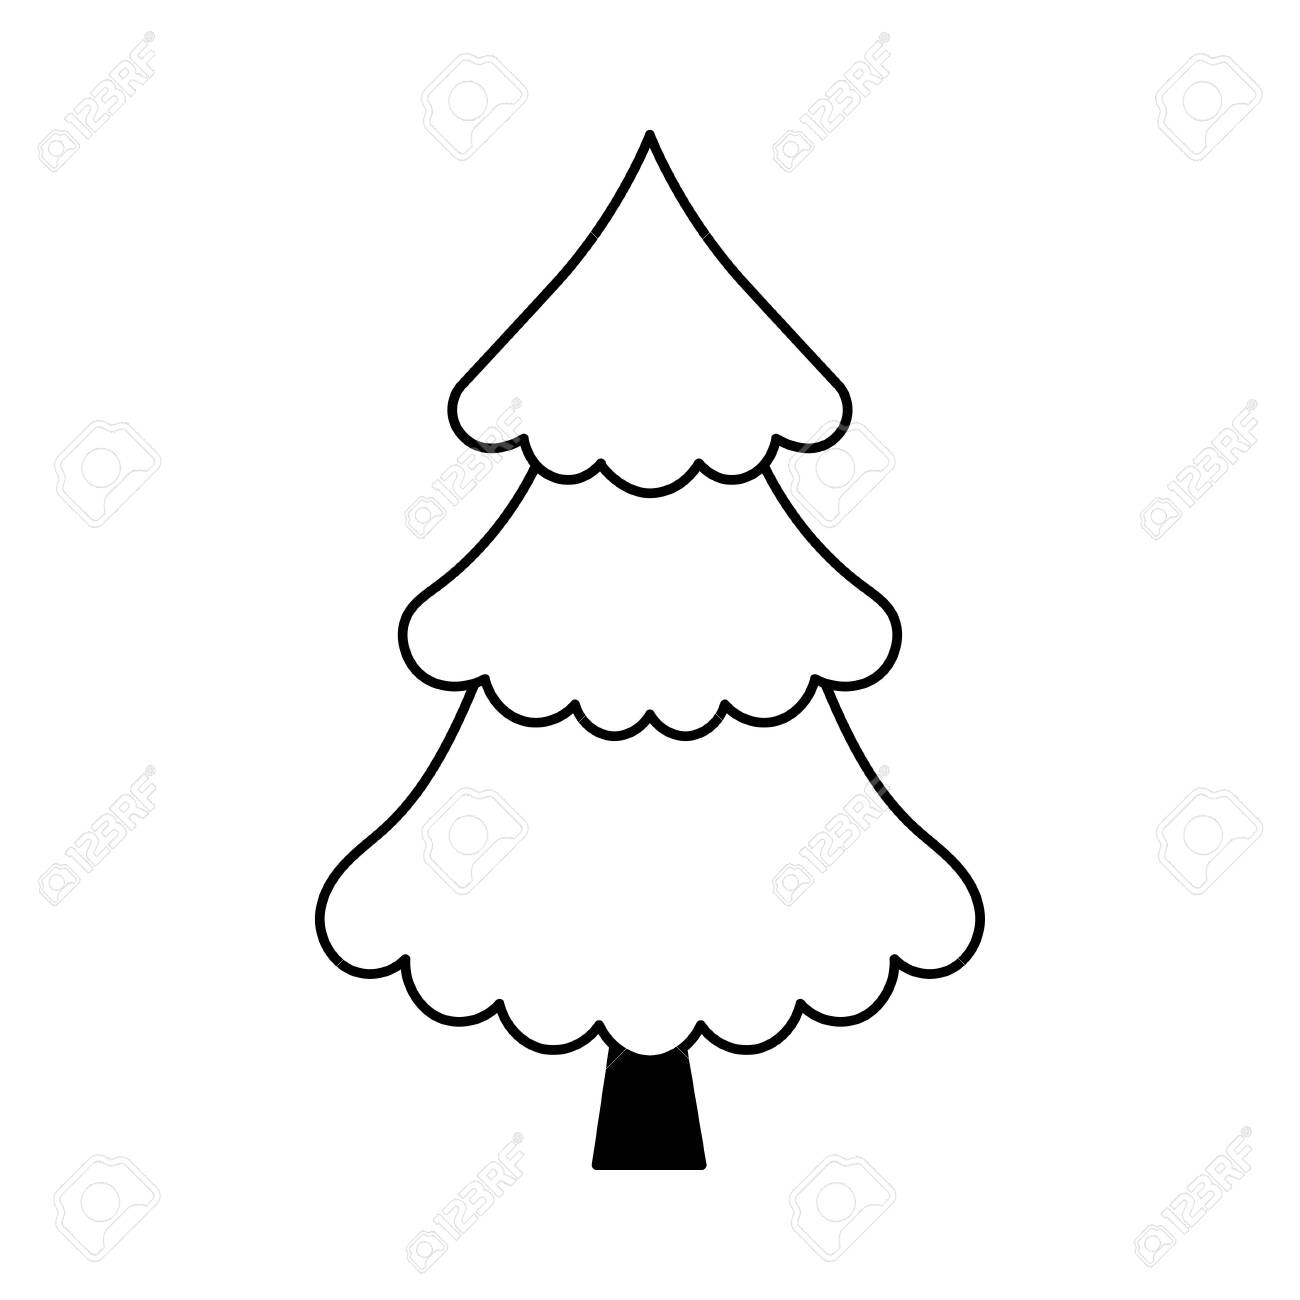 Simple Outline Style Christmas Tree Stylized Elements For New Royalty Free Cliparts Vectors And Stock Illustration Image 153497625